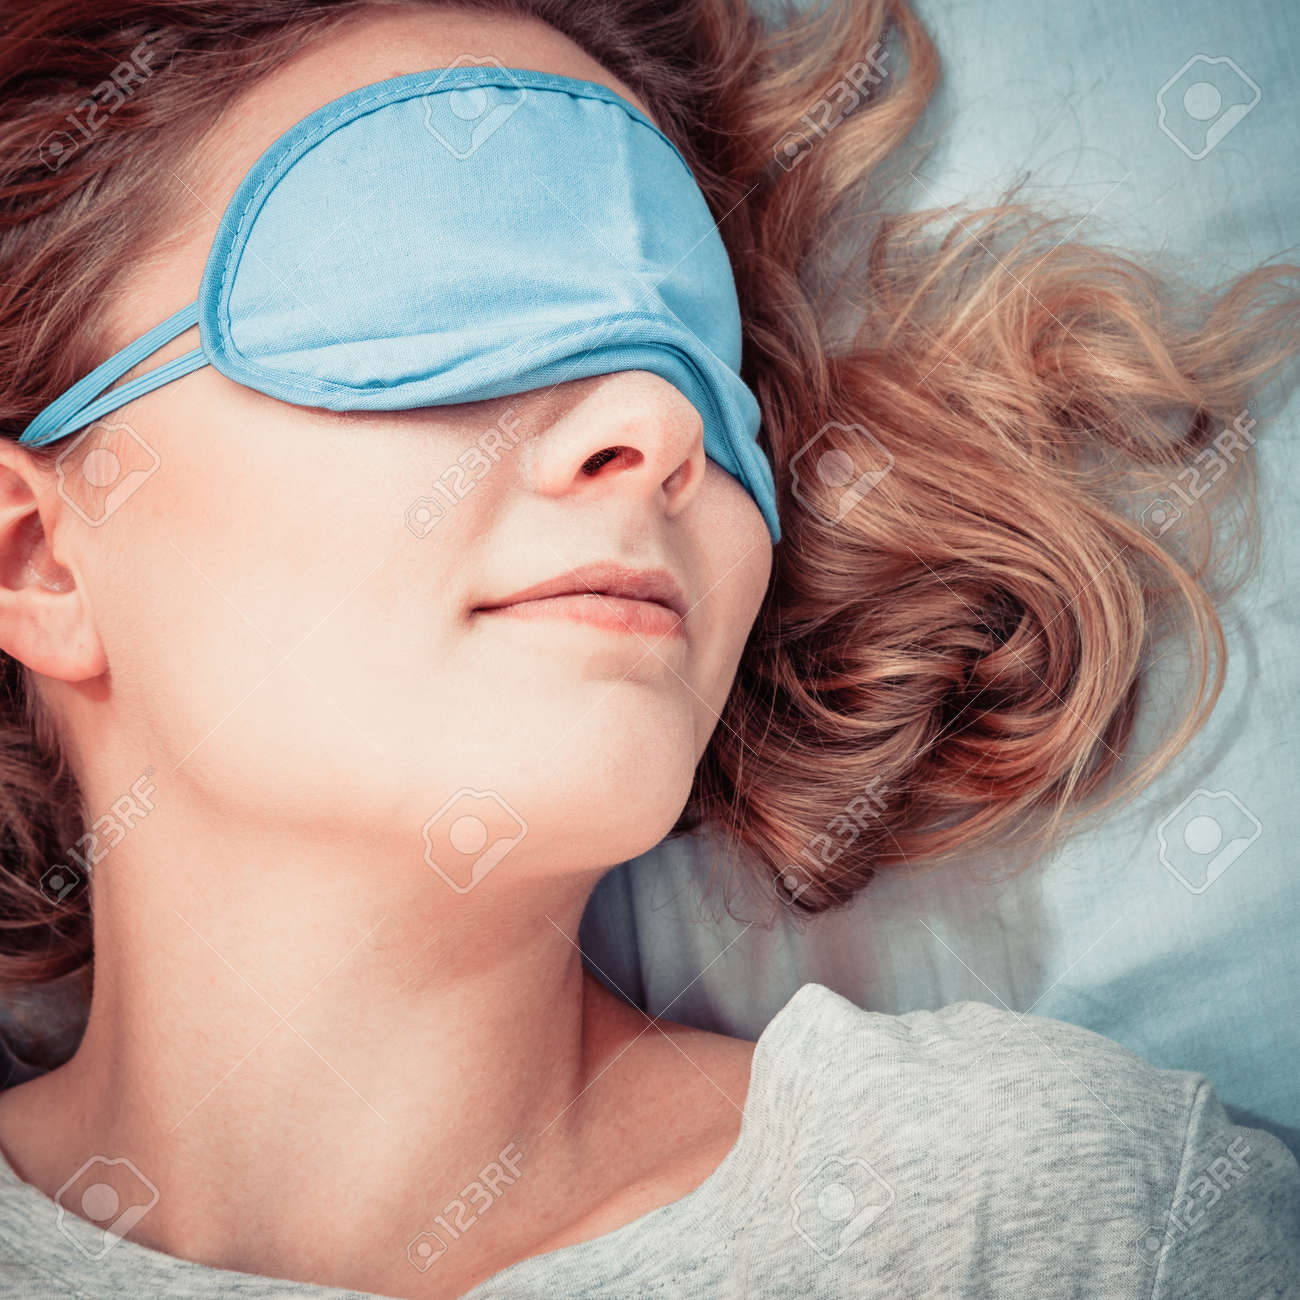 ef92561dda8 Stock Photo - Tired woman sleeping in bed wearing blindfold sleep mask. Young  girl taking nap.